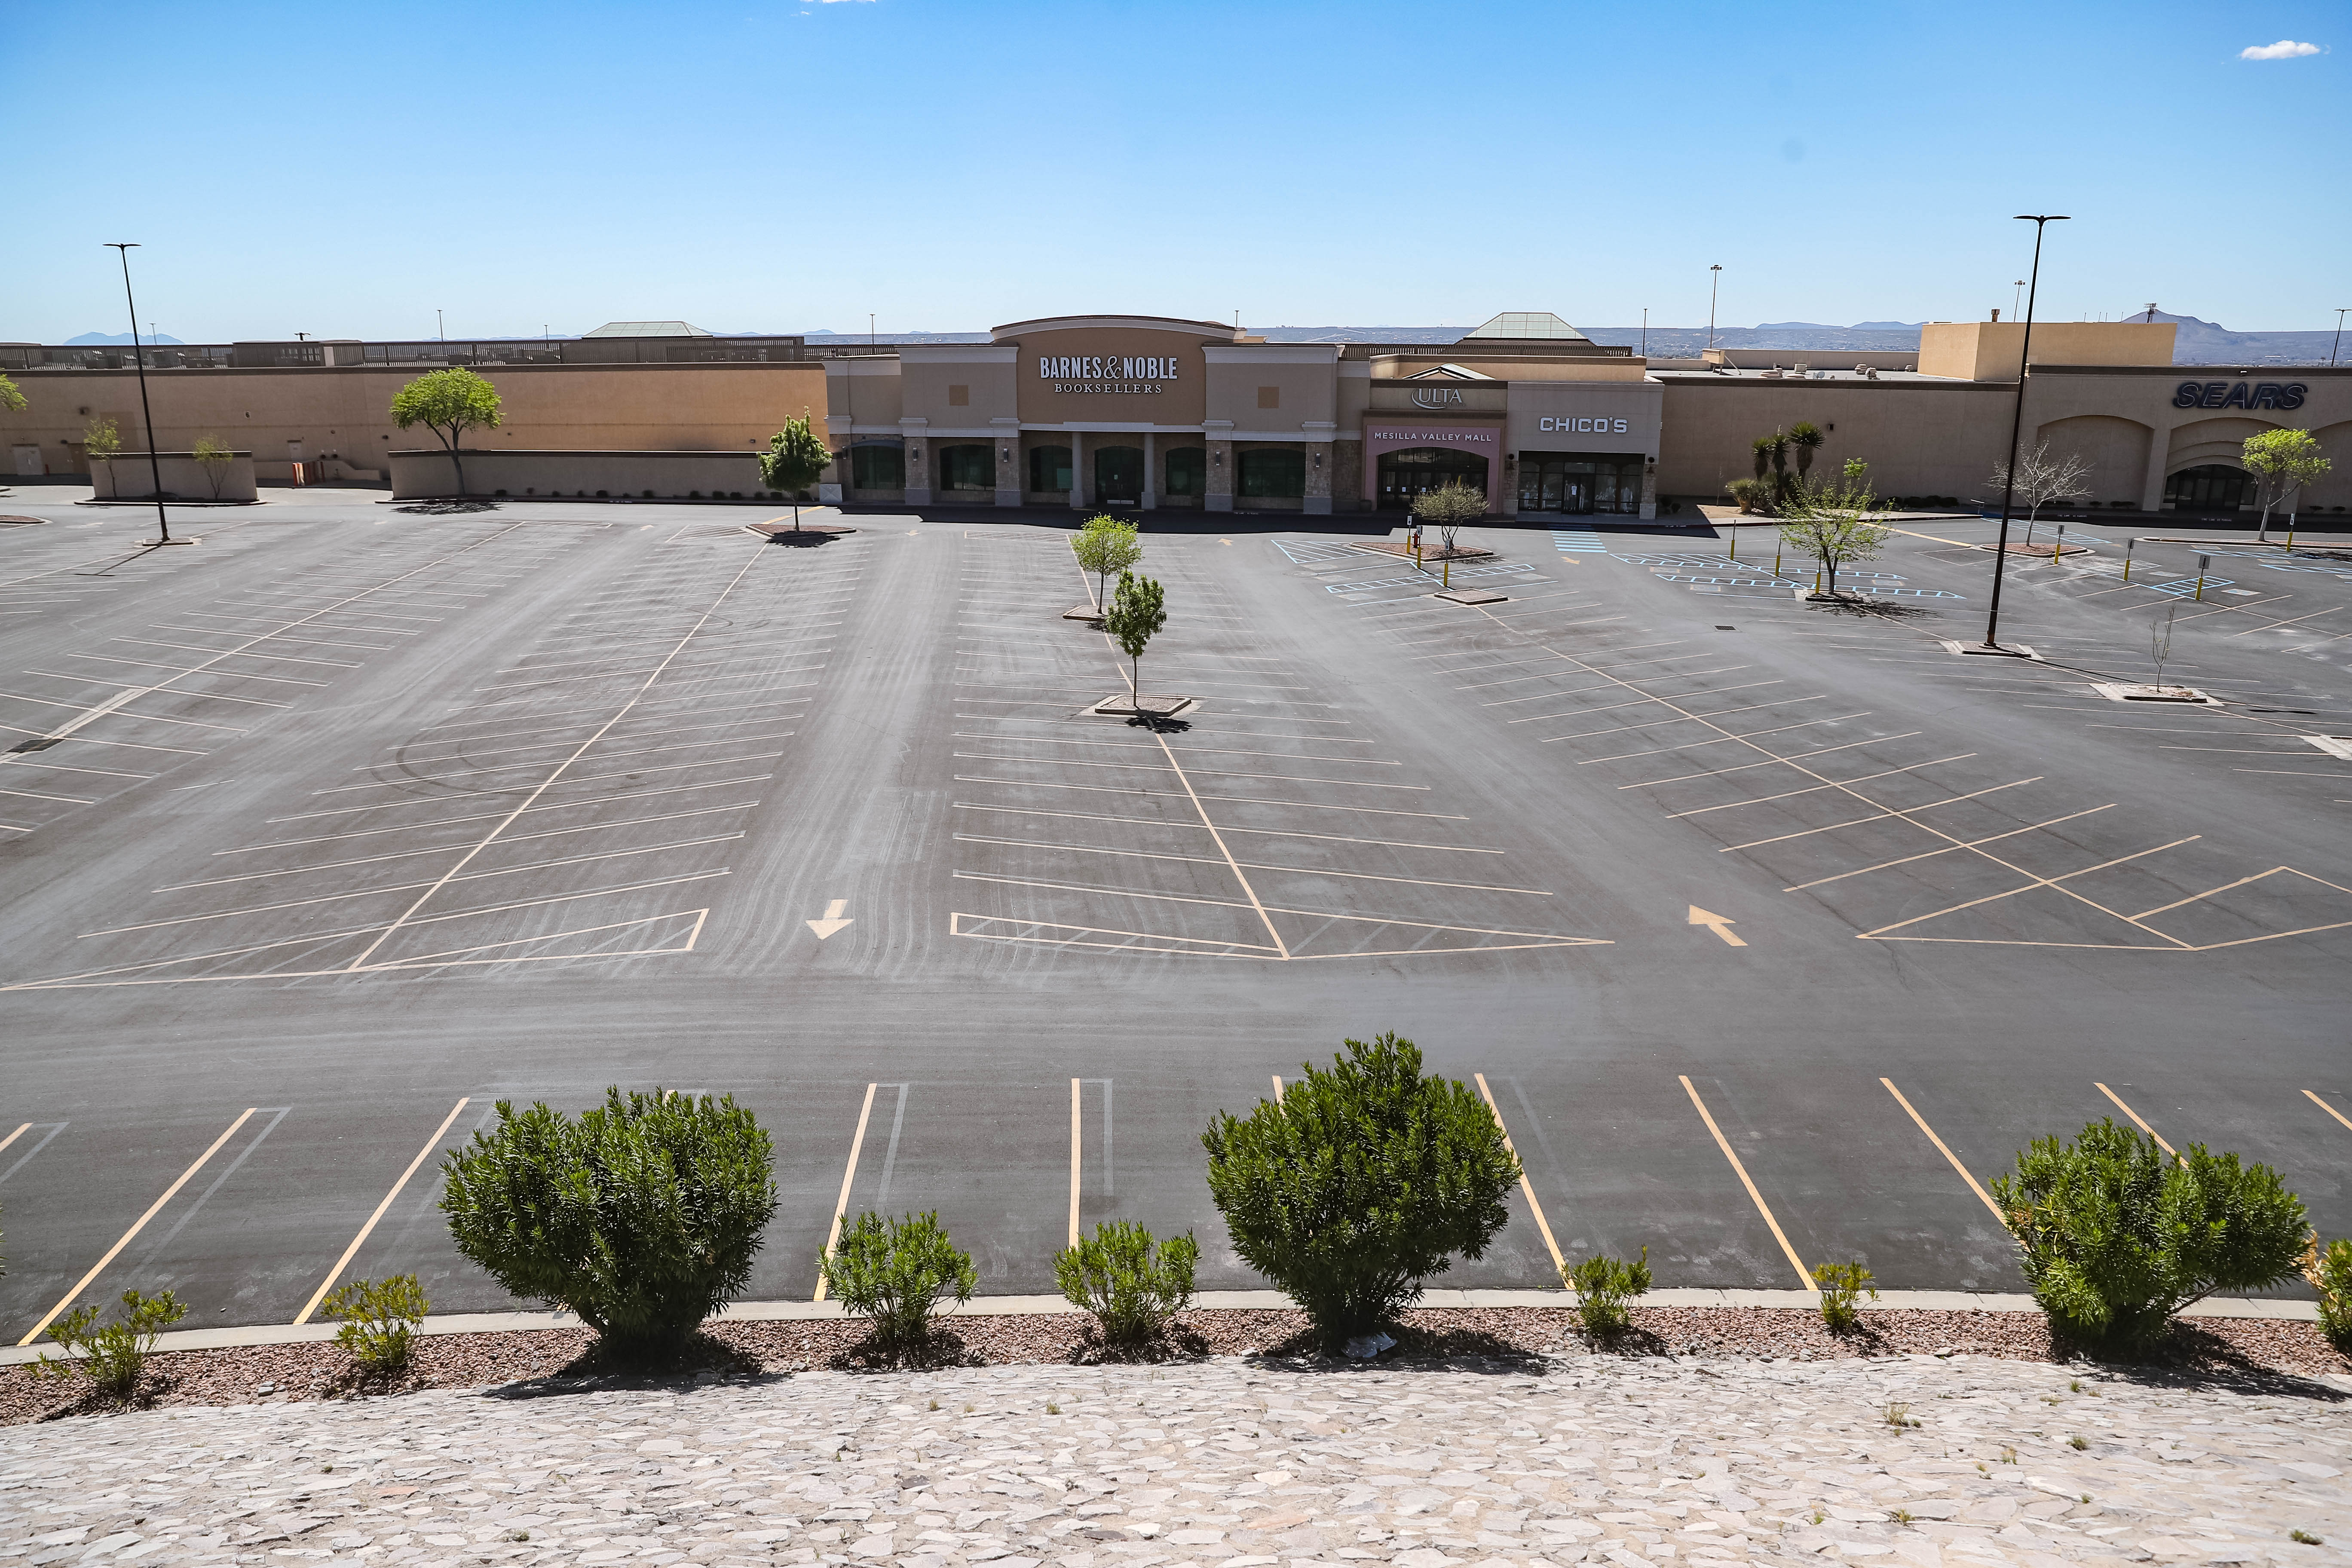 The parking lot of the Mesilla Valley Mall sits empty on Thursday, April 2, 2020, in front of Barnes and Noble in Las Cruces while all non-essential stores are closed during New Mexico's public health order.